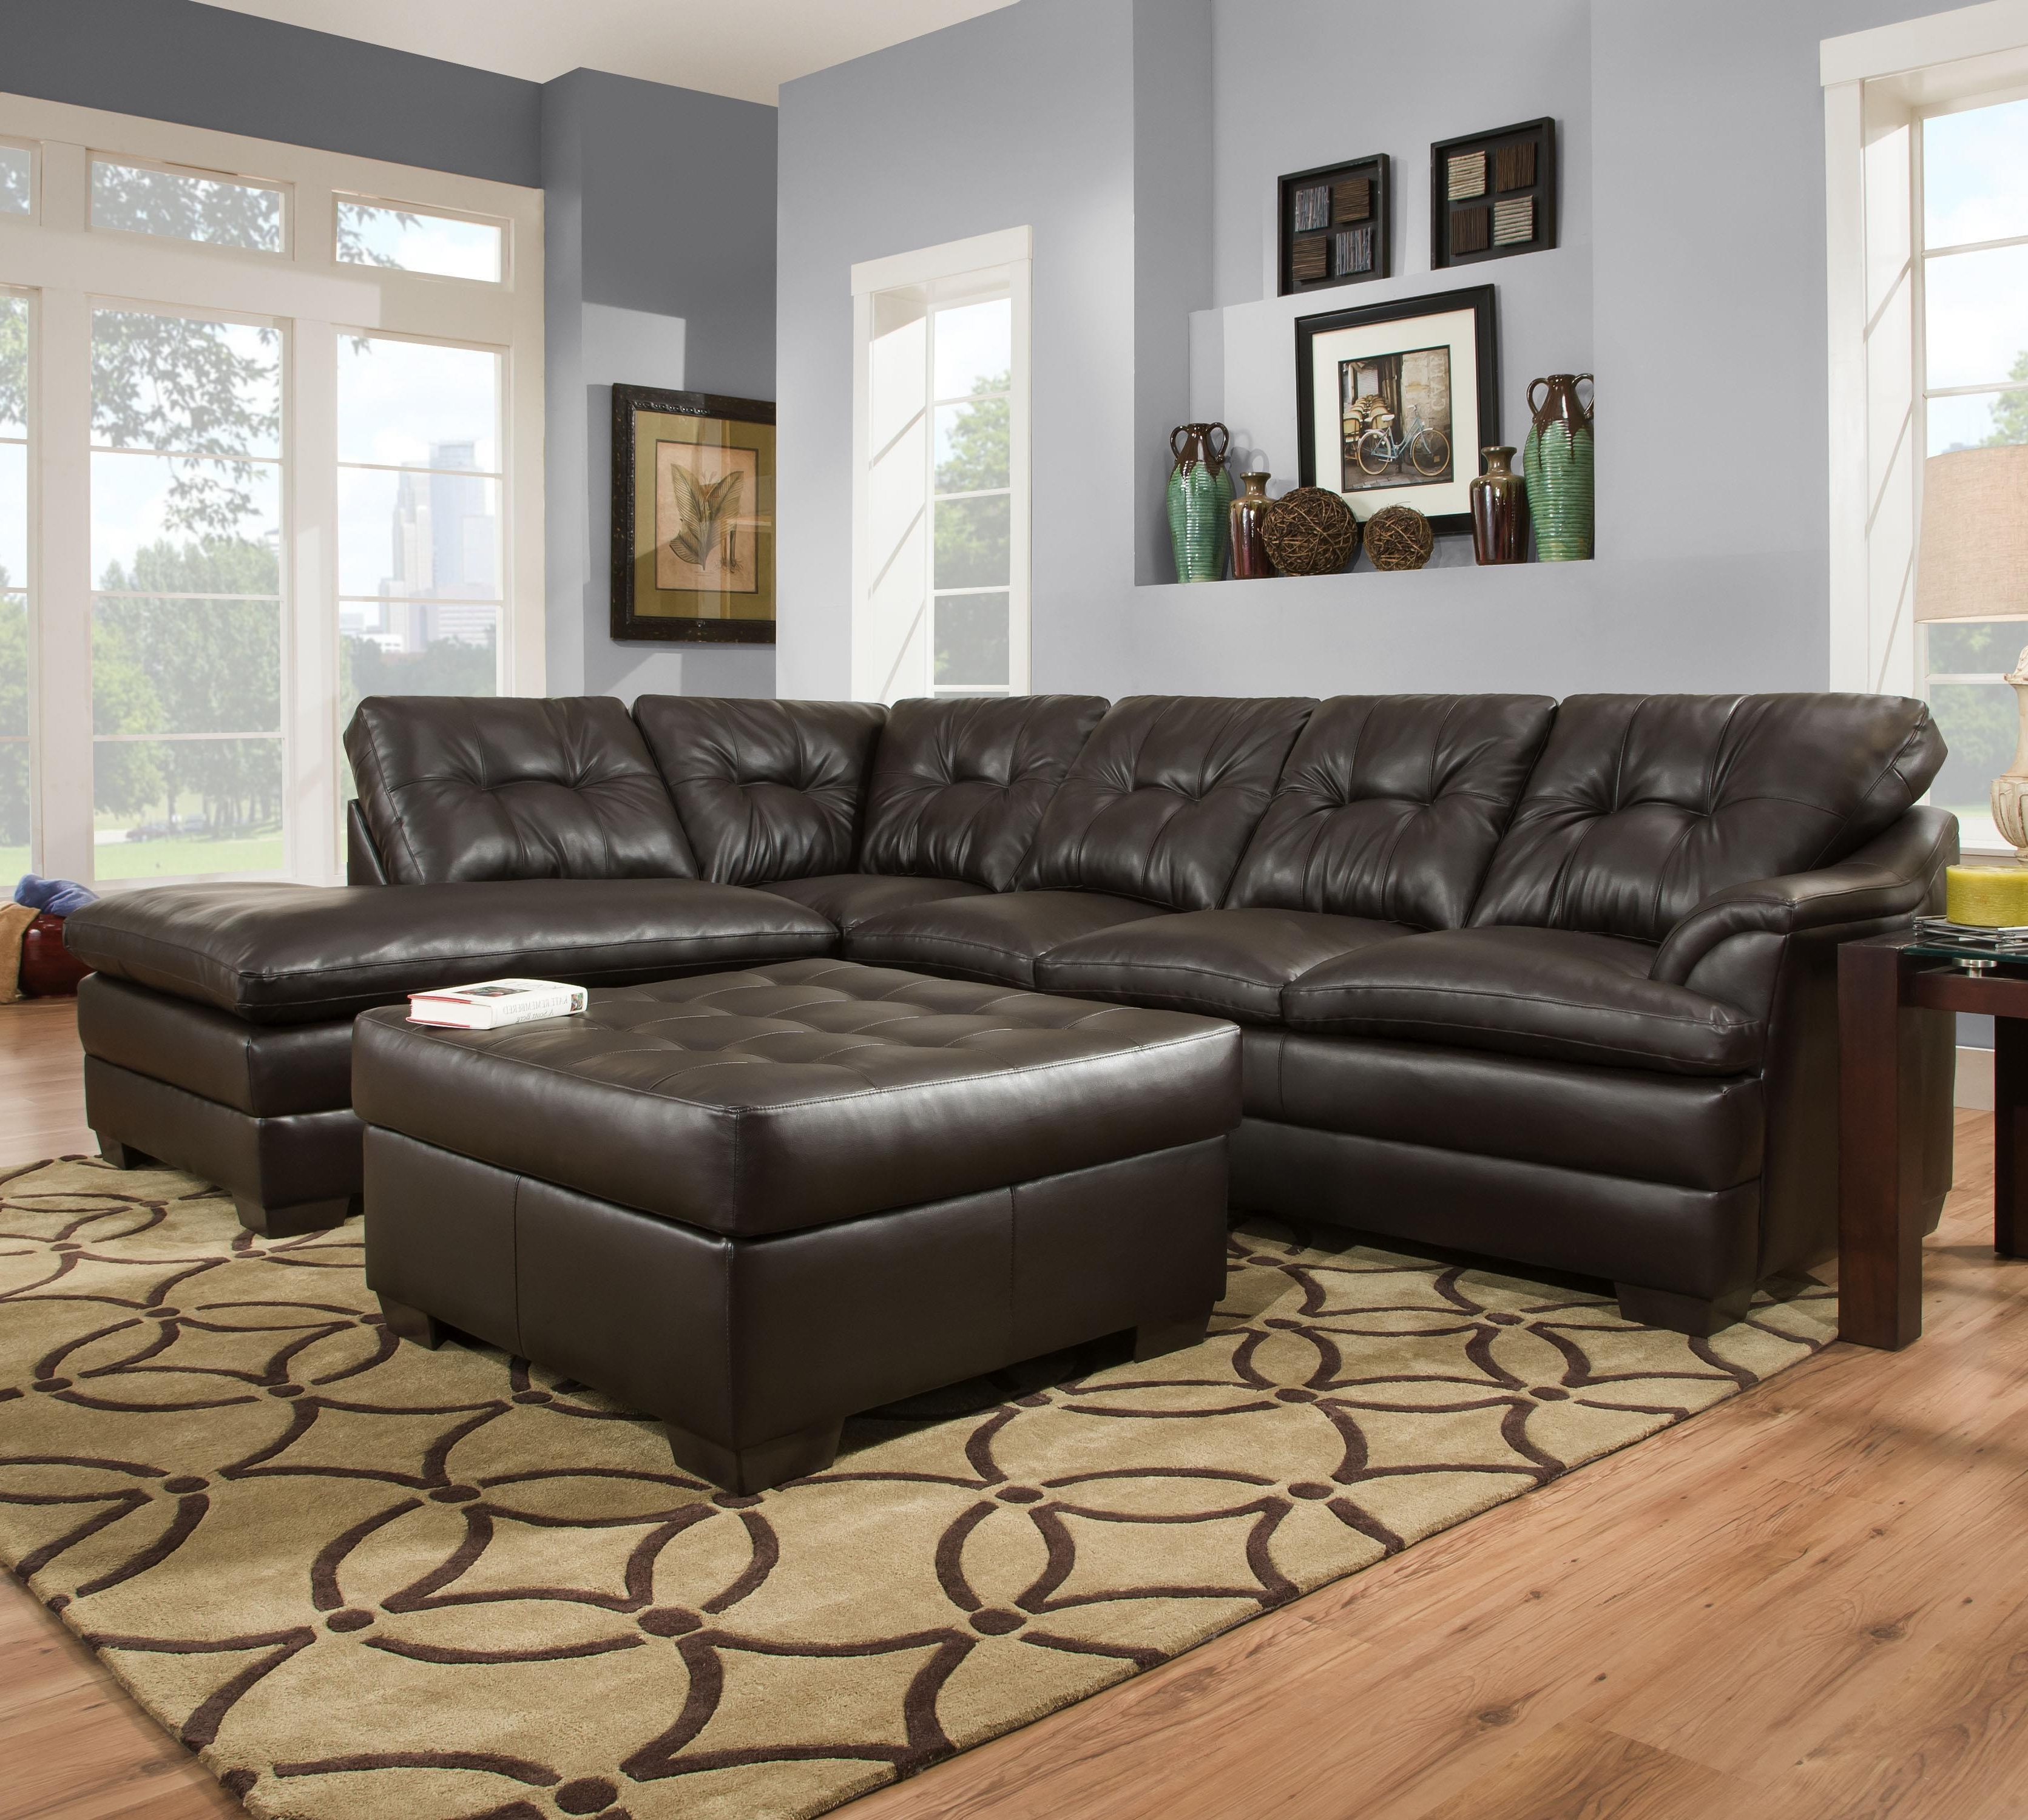 Jackson Tn Sectional Sofas Pertaining To Most Up To Date Furniture : Royal Furniture Jackson Tn Fresh American Furniture (View 7 of 20)